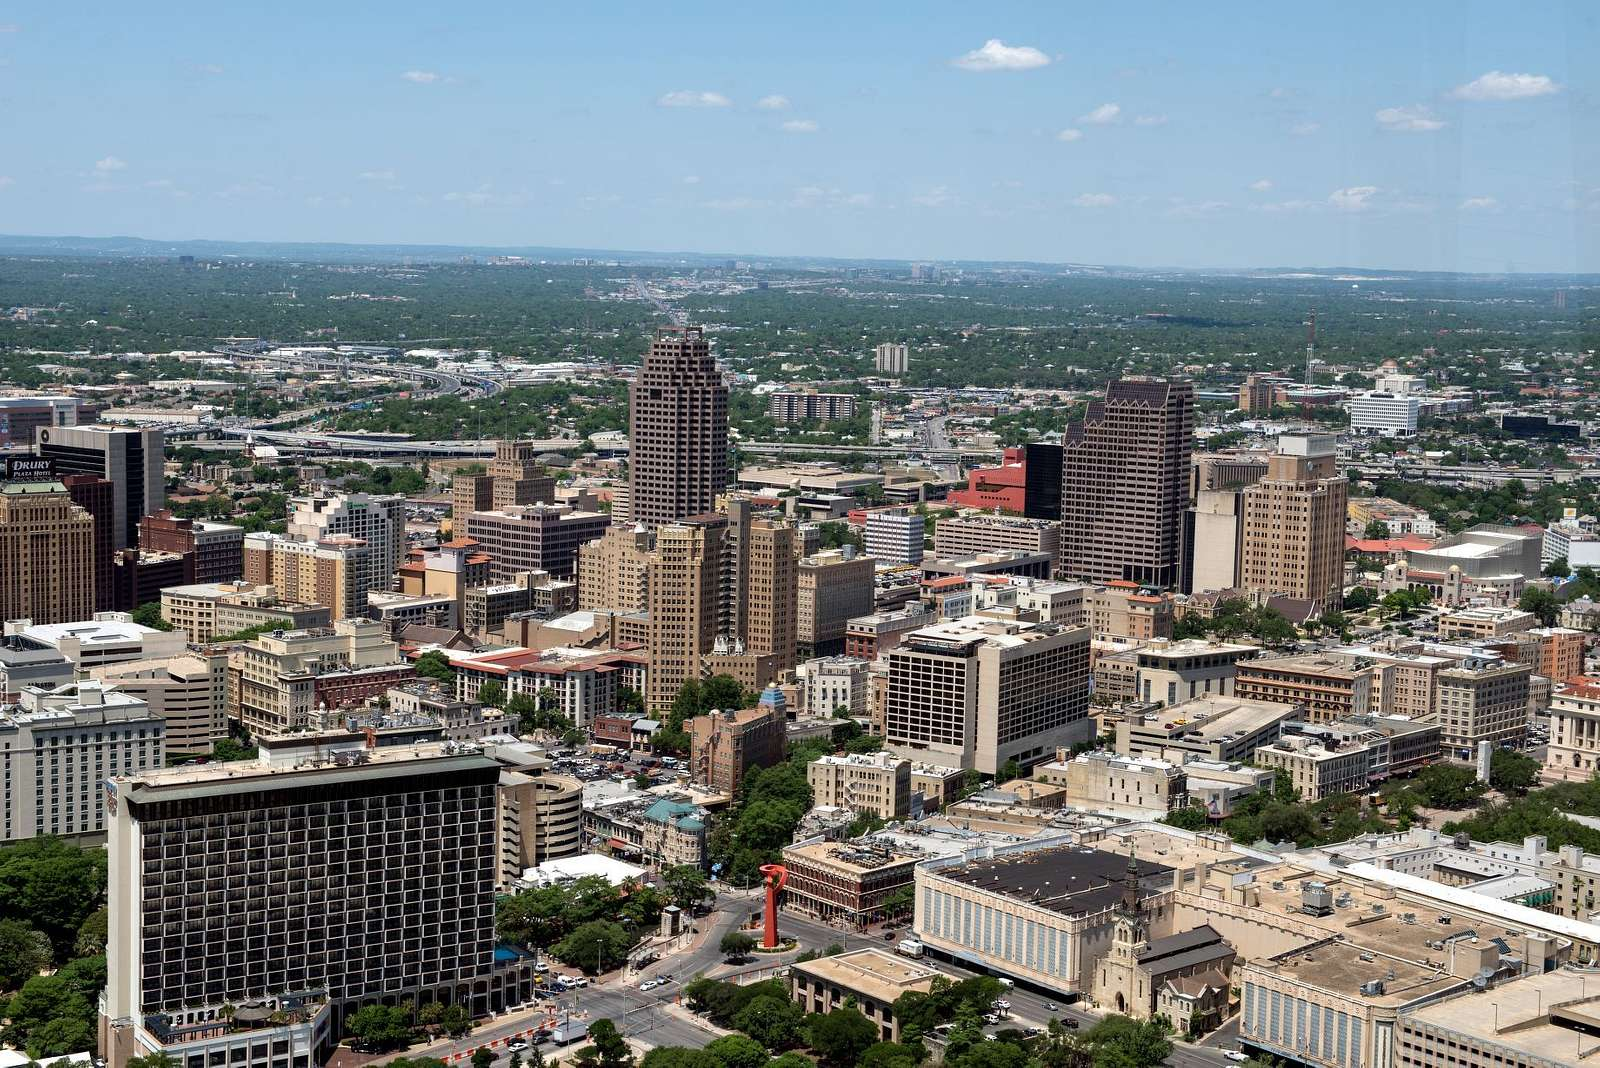 View of downtown San Antonio, Texas, from the Tower of the Americas